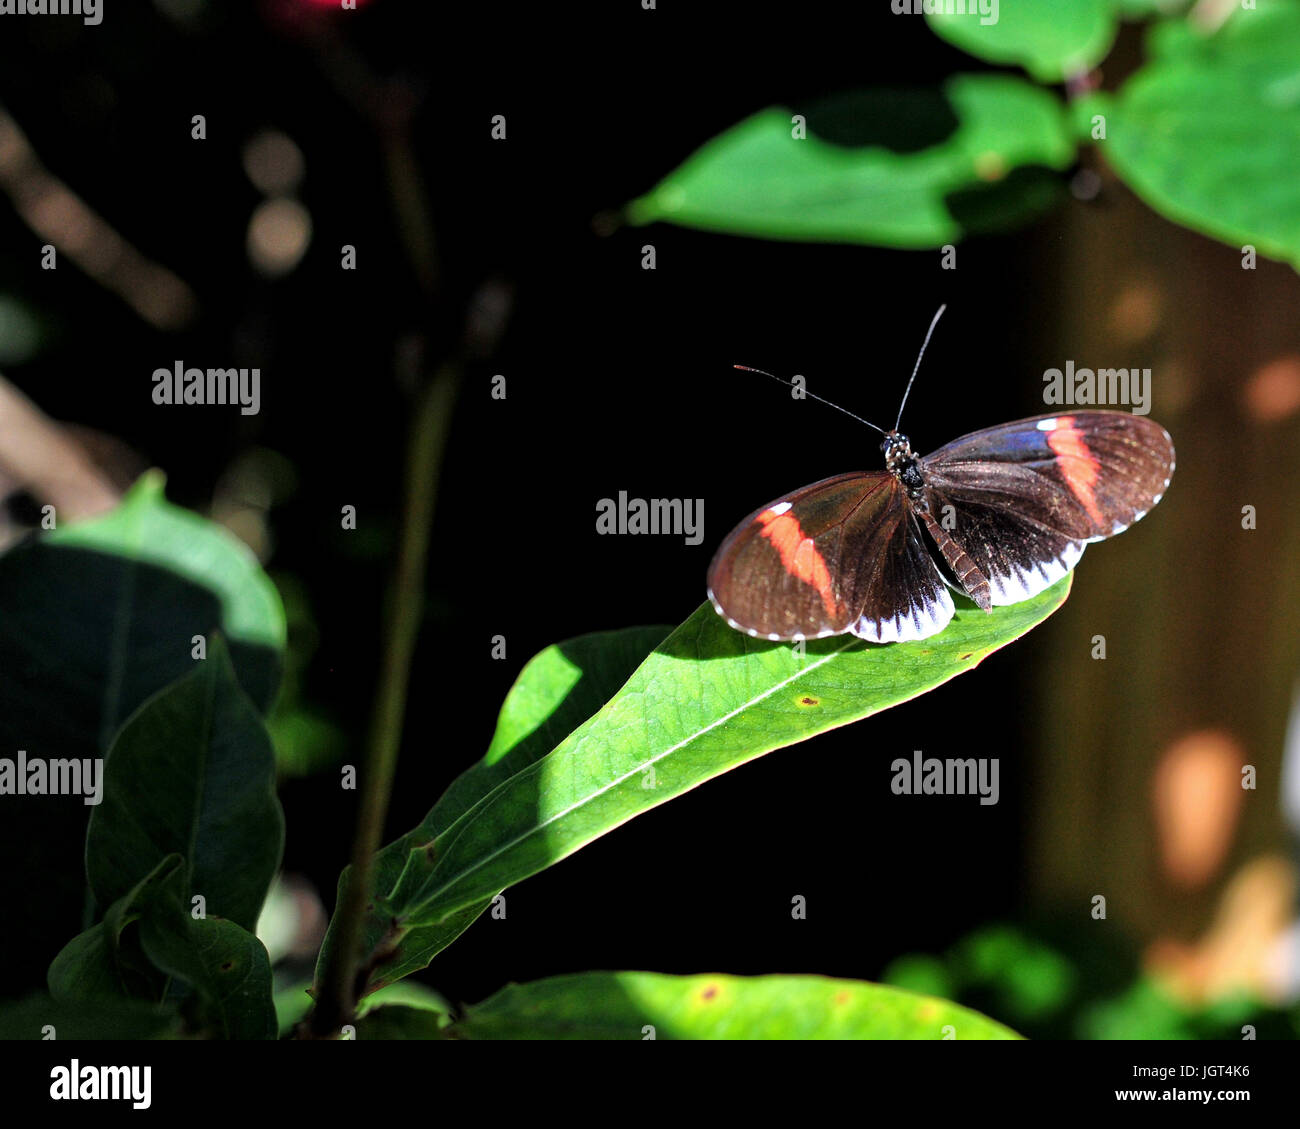 Moth on a branch - Stock Image